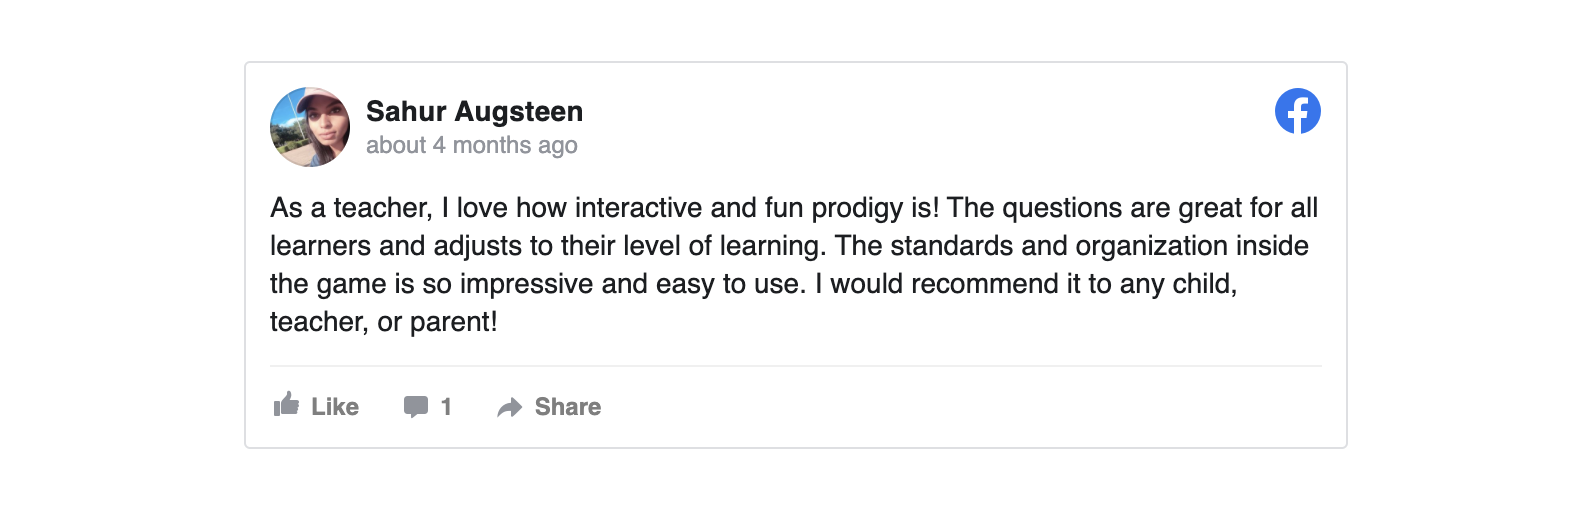 As a teacher I love how interactive and fun prodigy is. The questions are great for all learners and adjusts to their level of learning. The standards and organization insight the game is so impressive and easy to use. I would recommend it to any child teacher or parent.